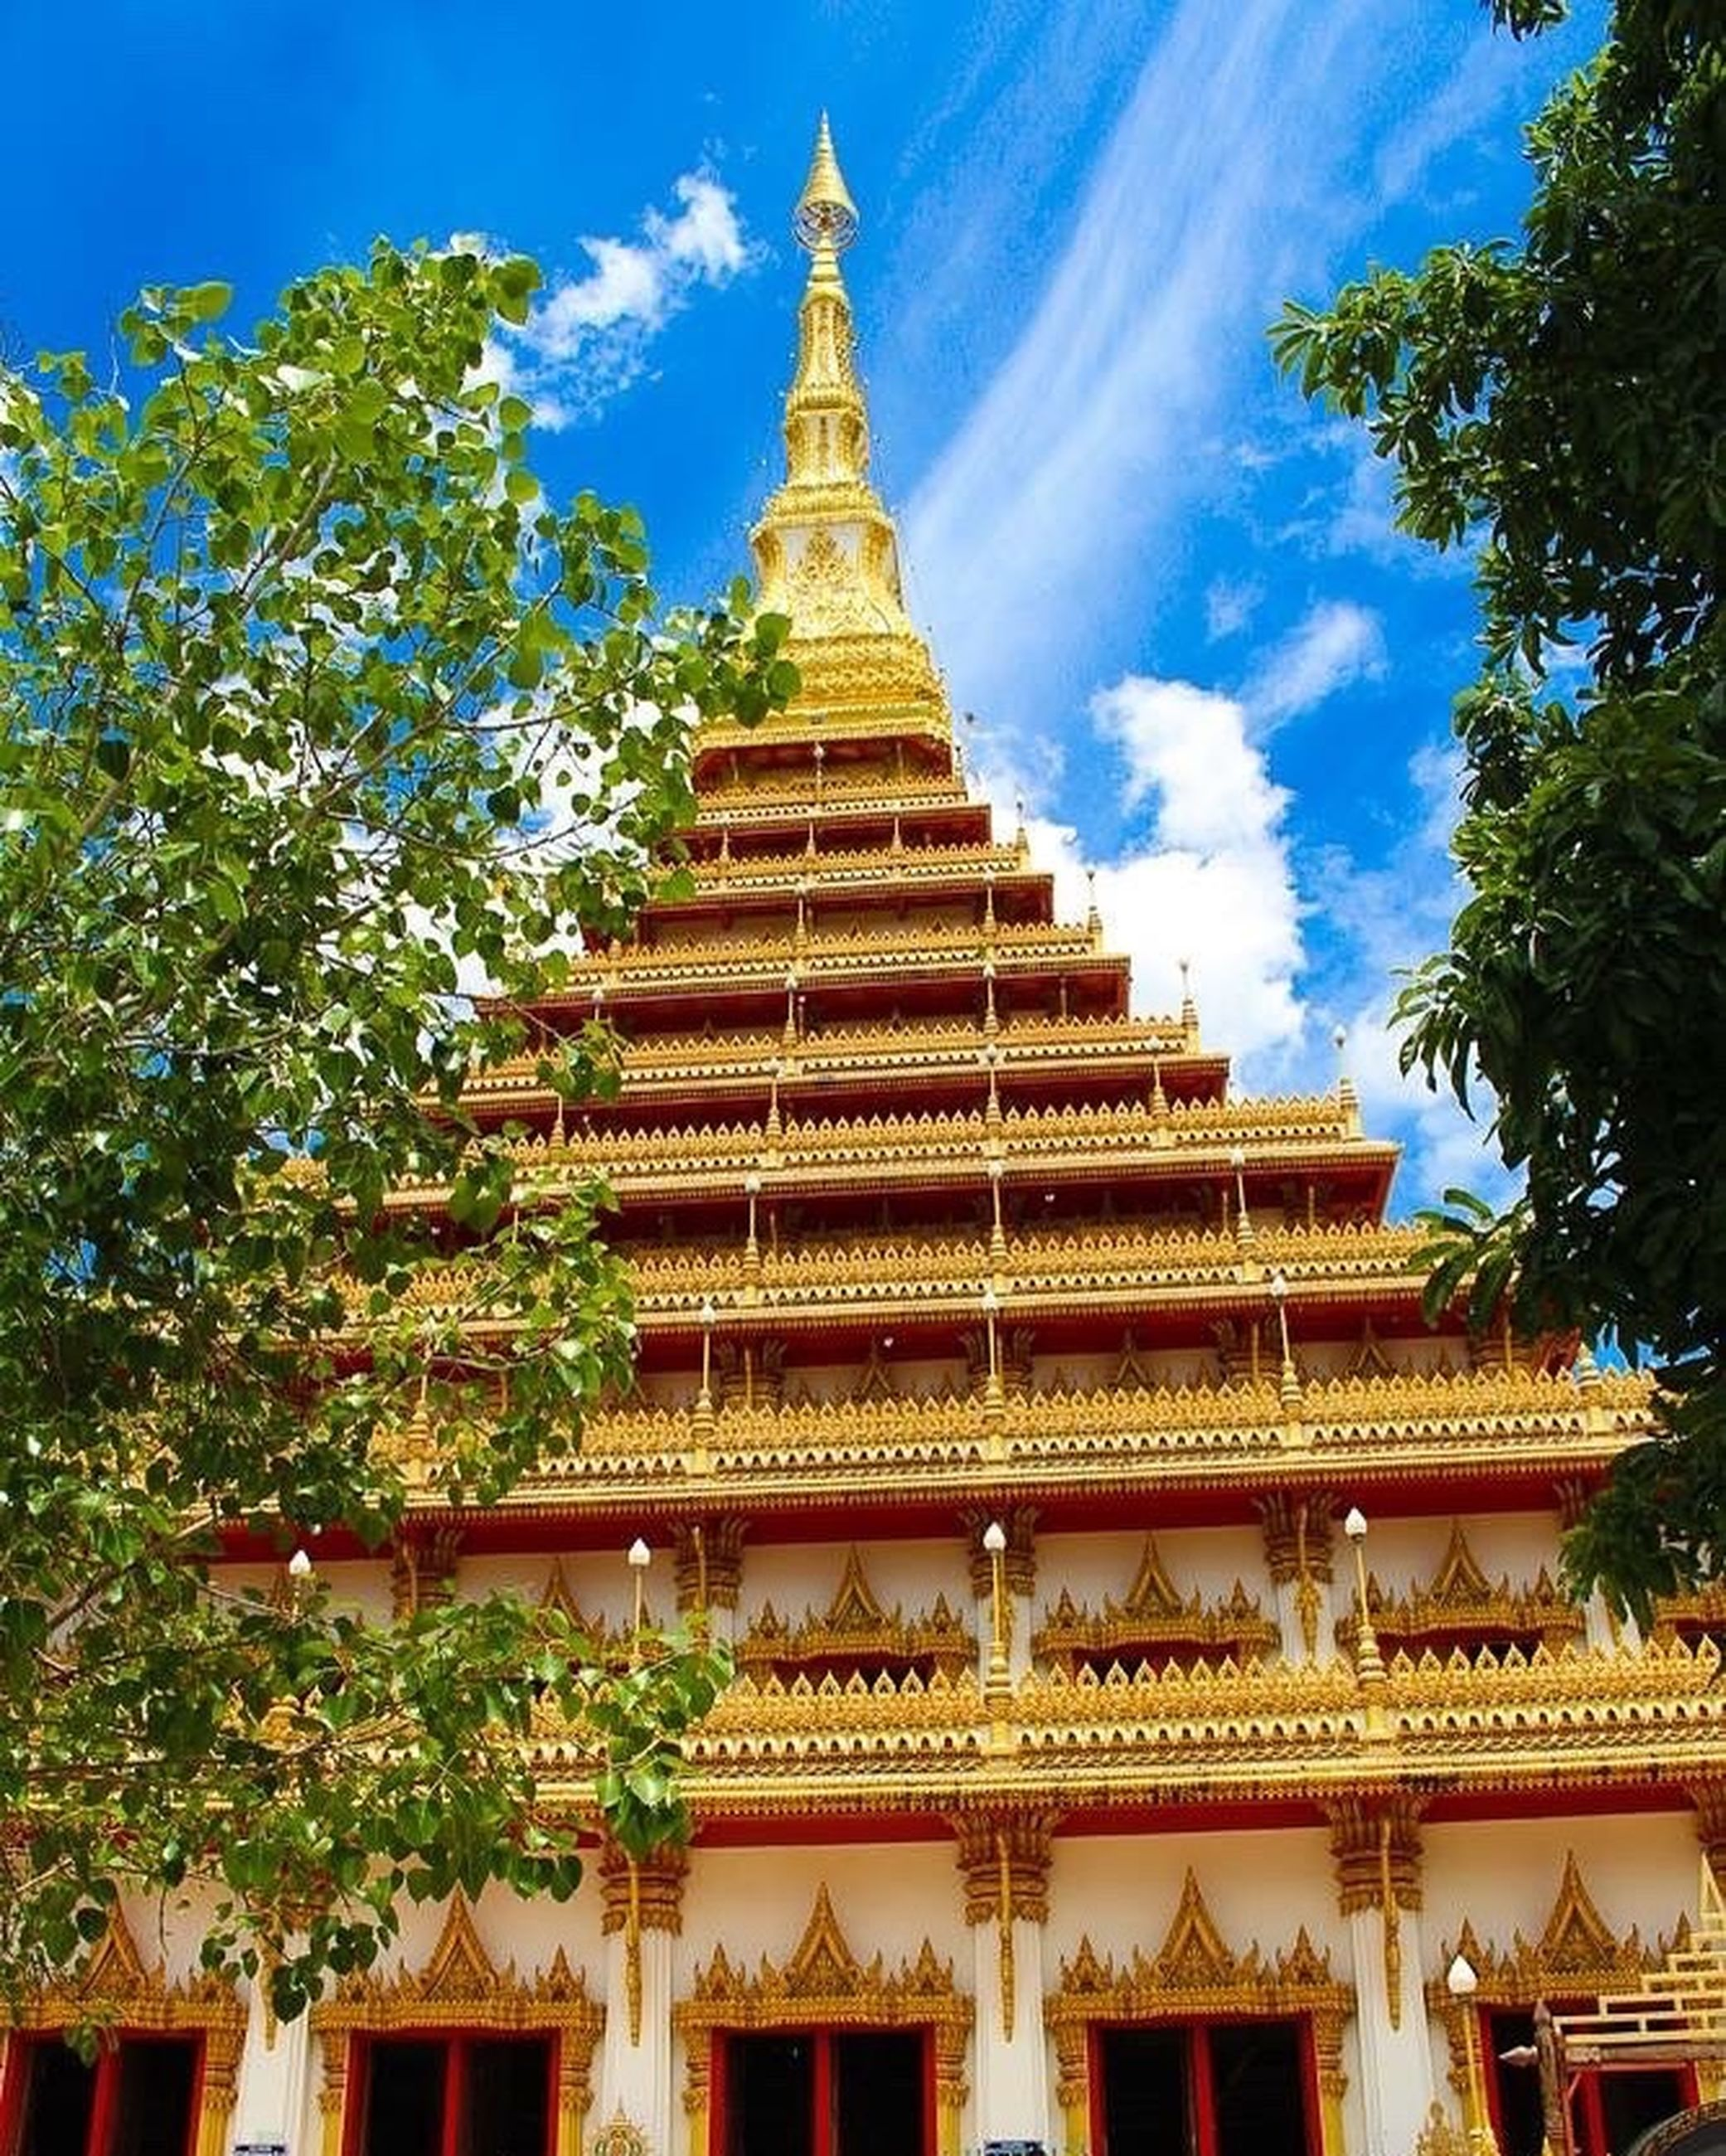 architecture, built structure, building exterior, tree, spirituality, religion, place of worship, low angle view, temple - building, sky, pagoda, day, spire, tourism, outdoors, tall, tall - high, majestic, temple, no people, stupa